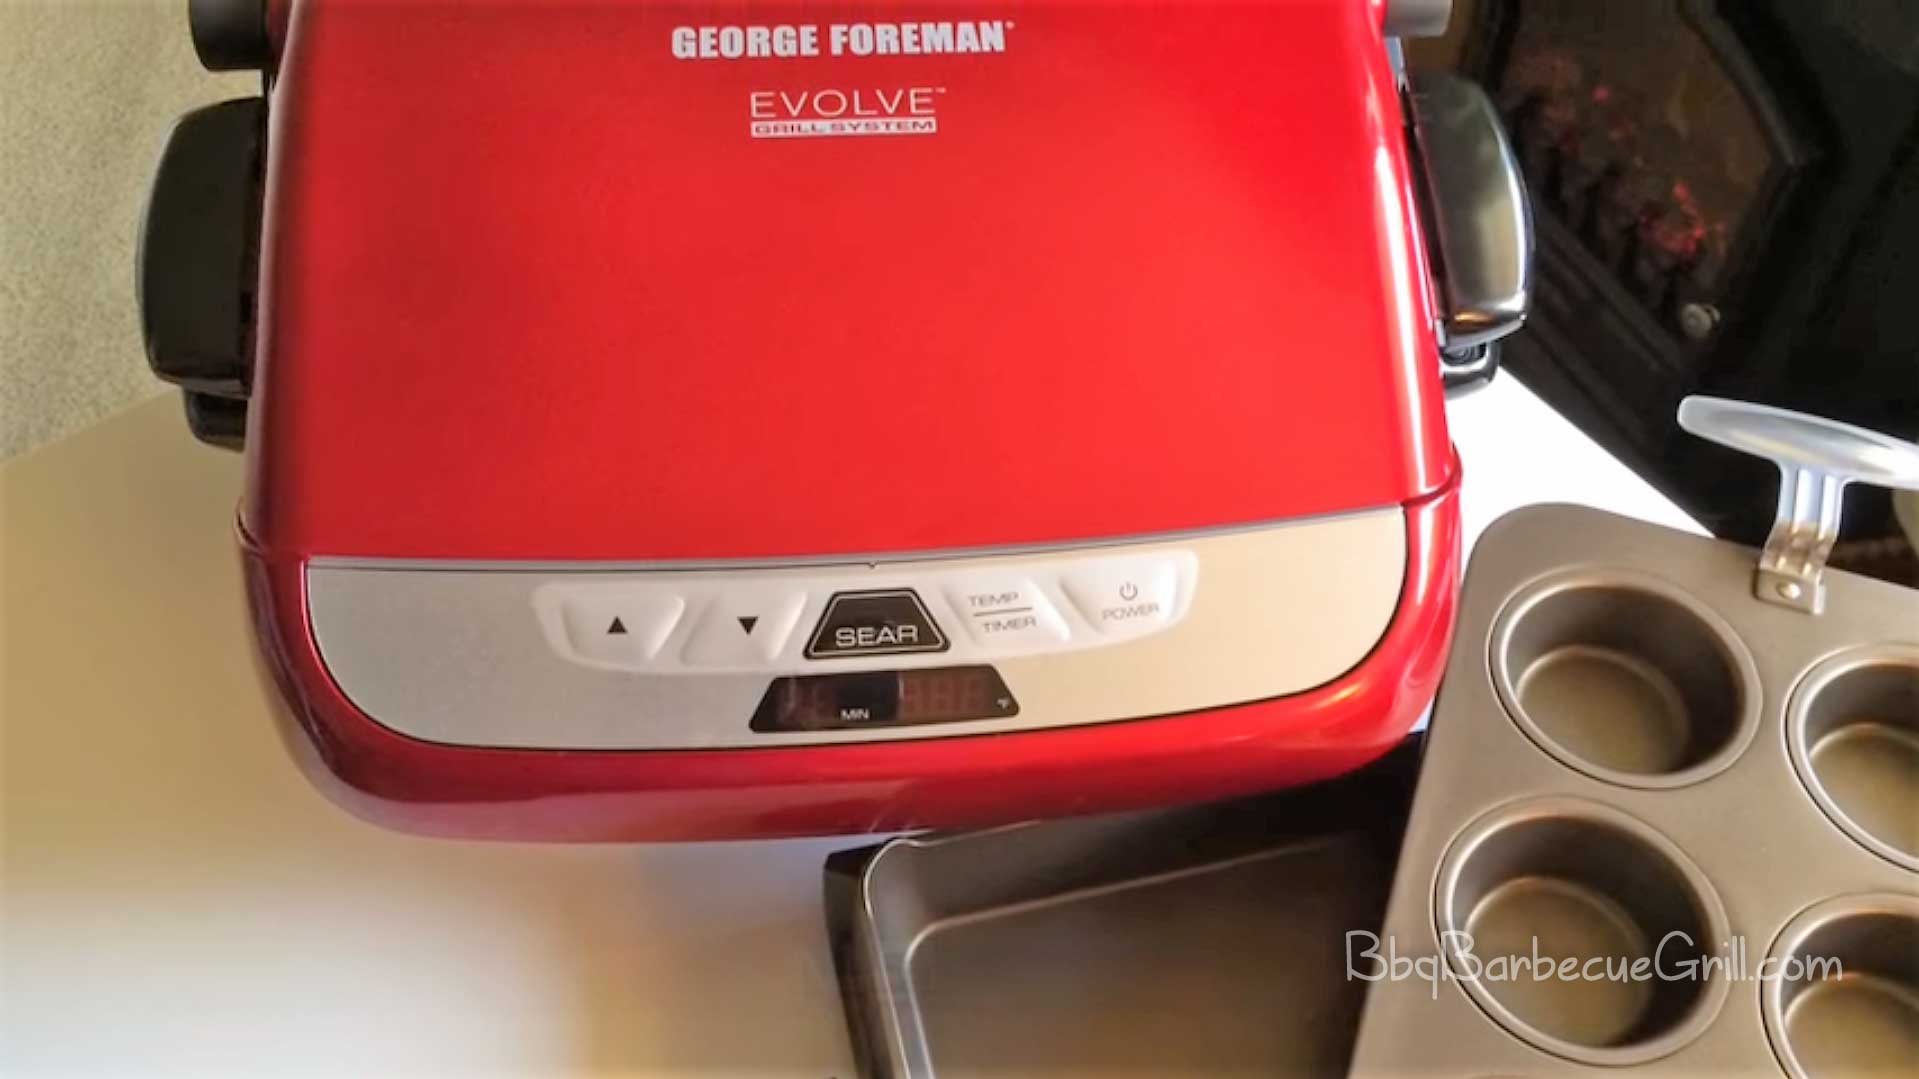 Best george foreman electric grill